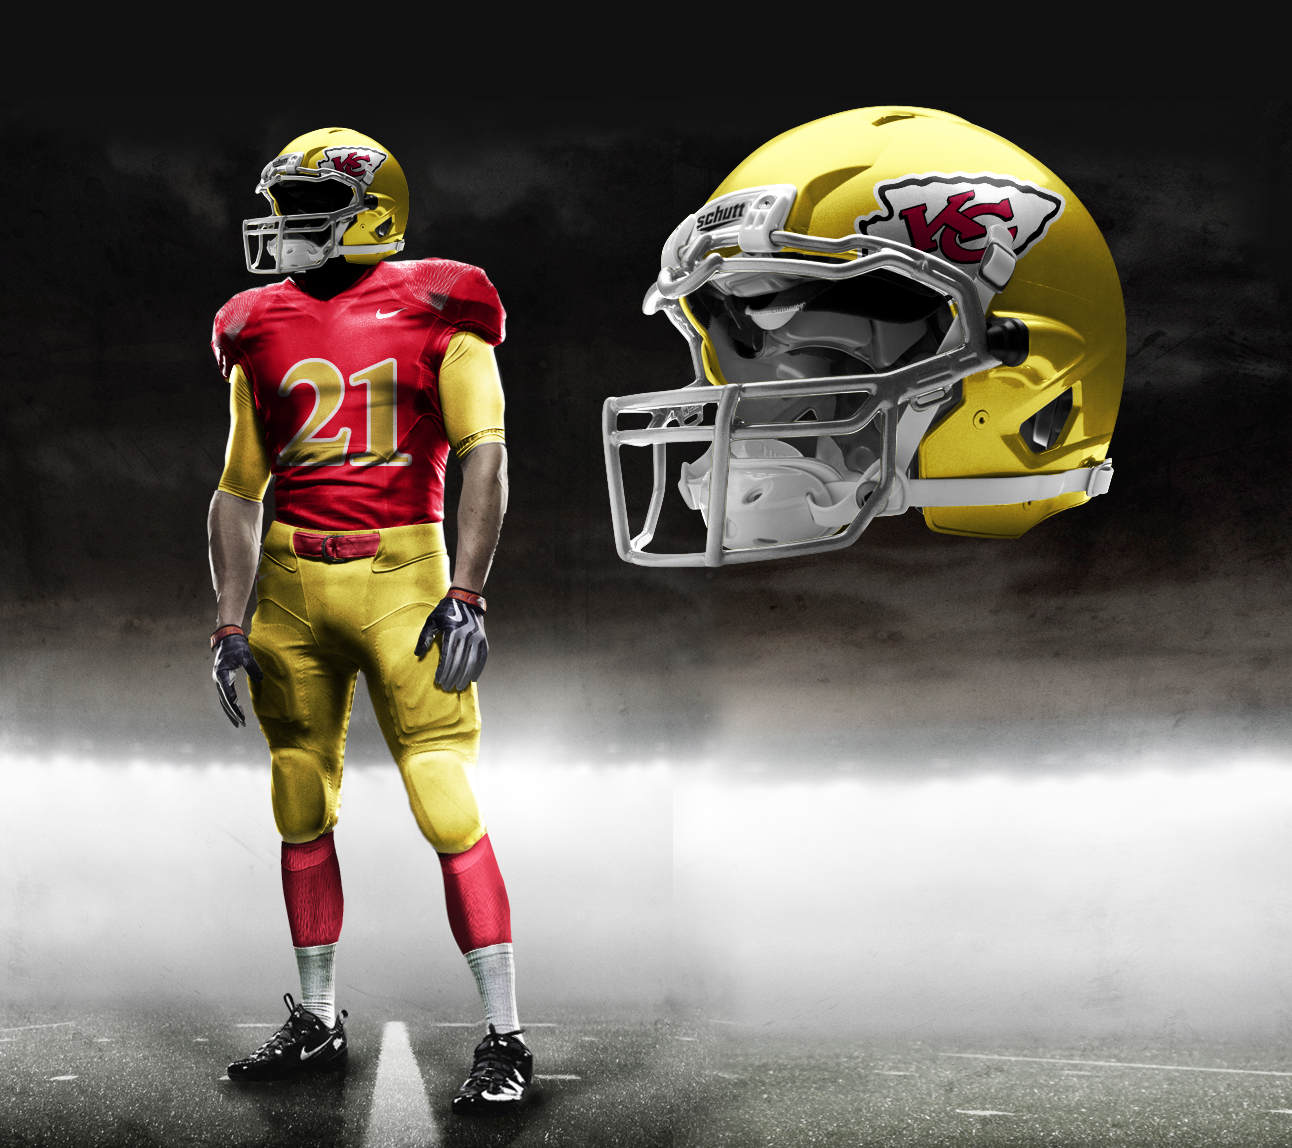 chiefs | chiefs | Chiefs | Pinterest | Nfl Uniforms, Change To and ...